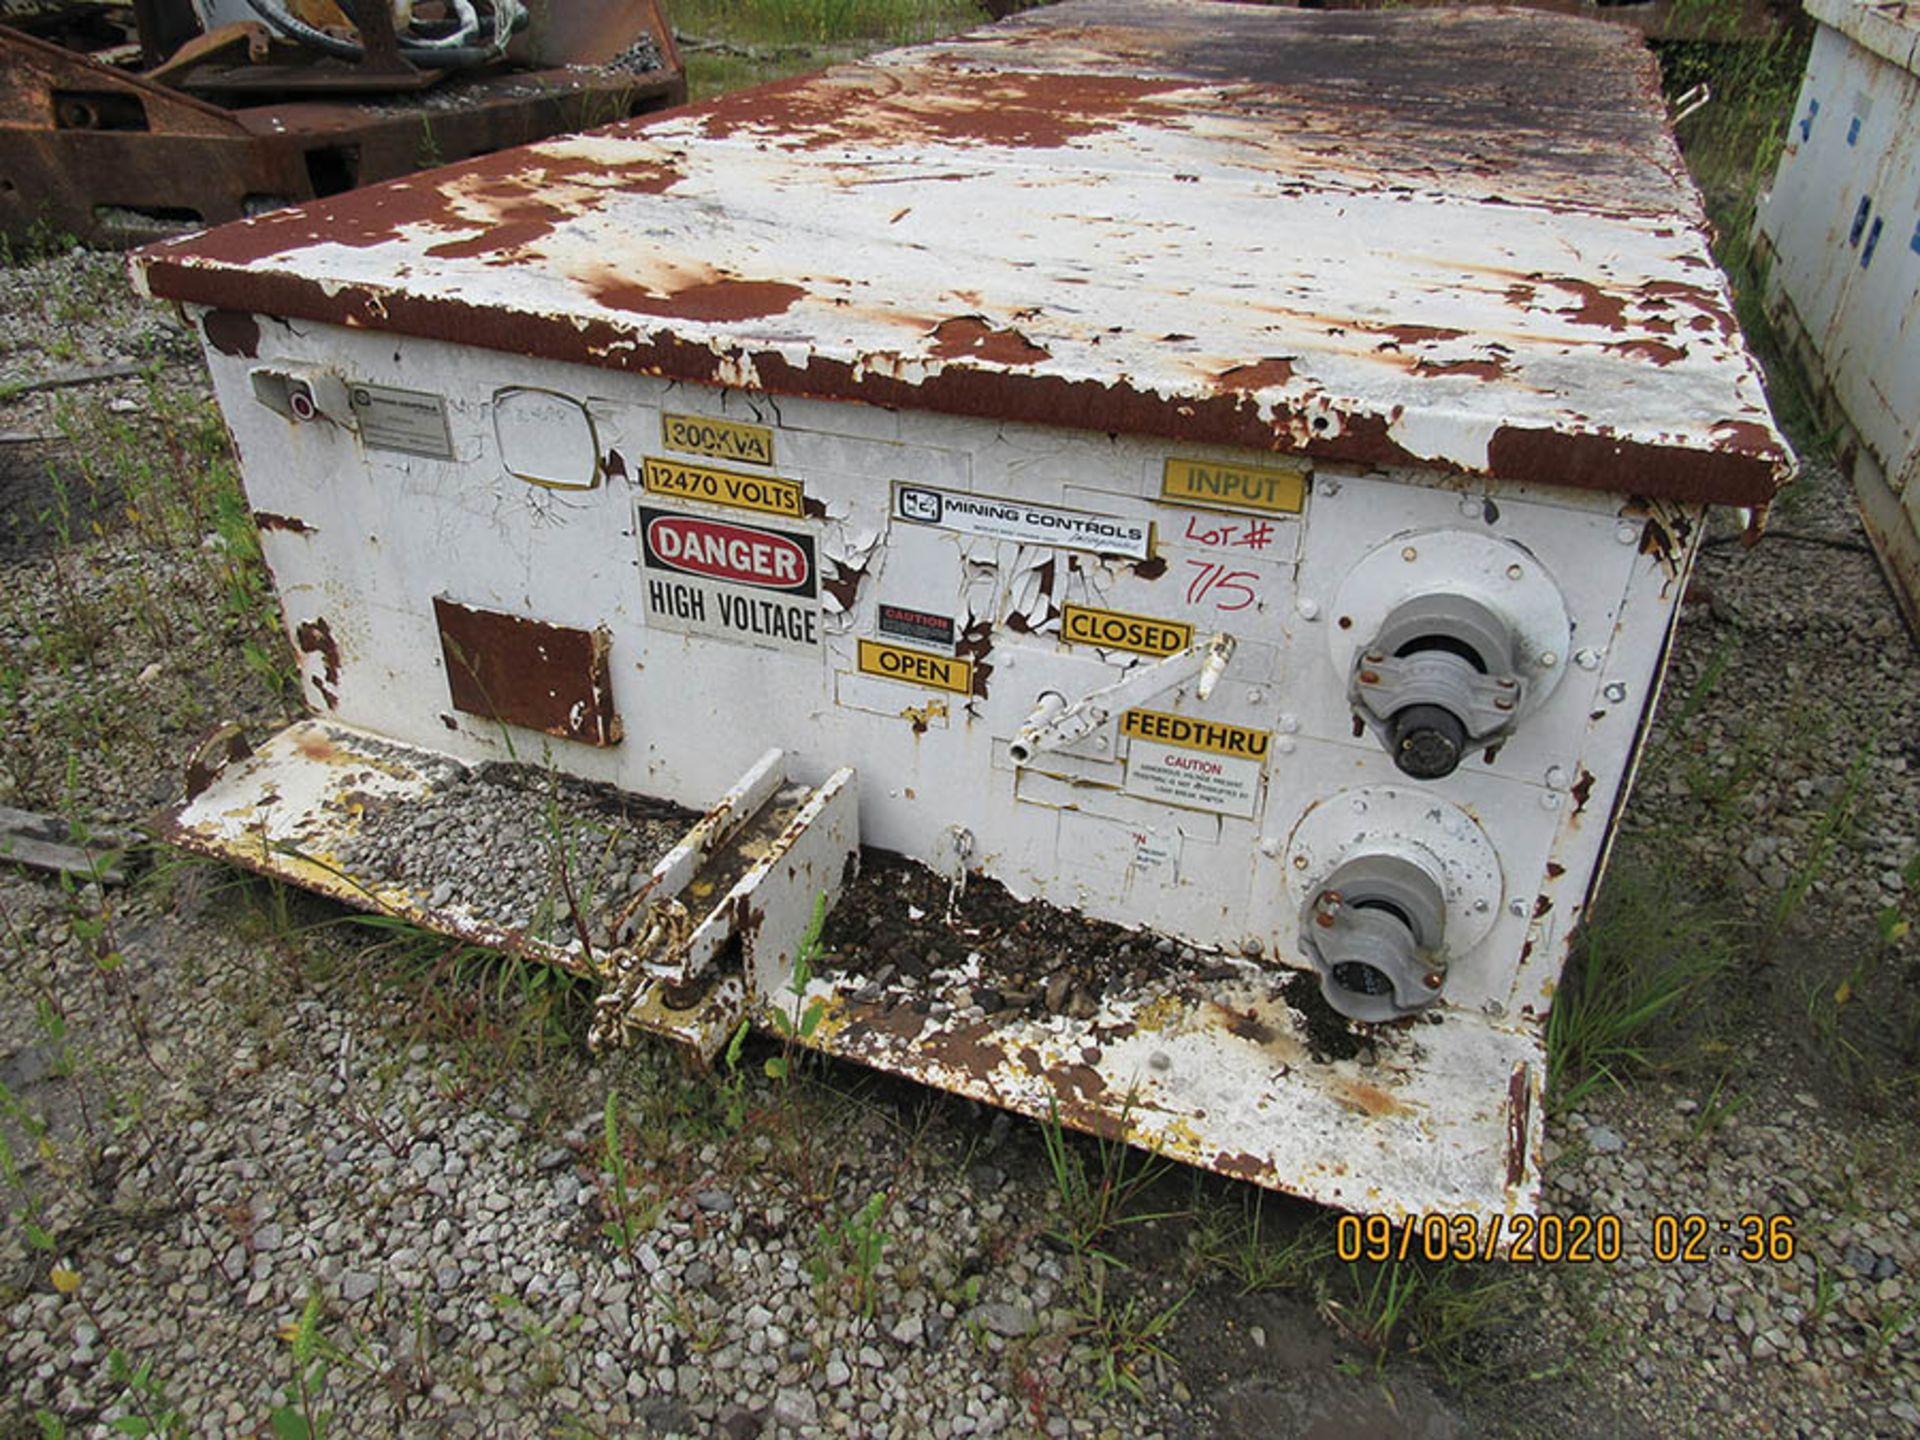 Lot 715 - MINING CONTROL INC., MODEL 32177-48460-698, 300 KVA POWER CENTER, 12470-480V